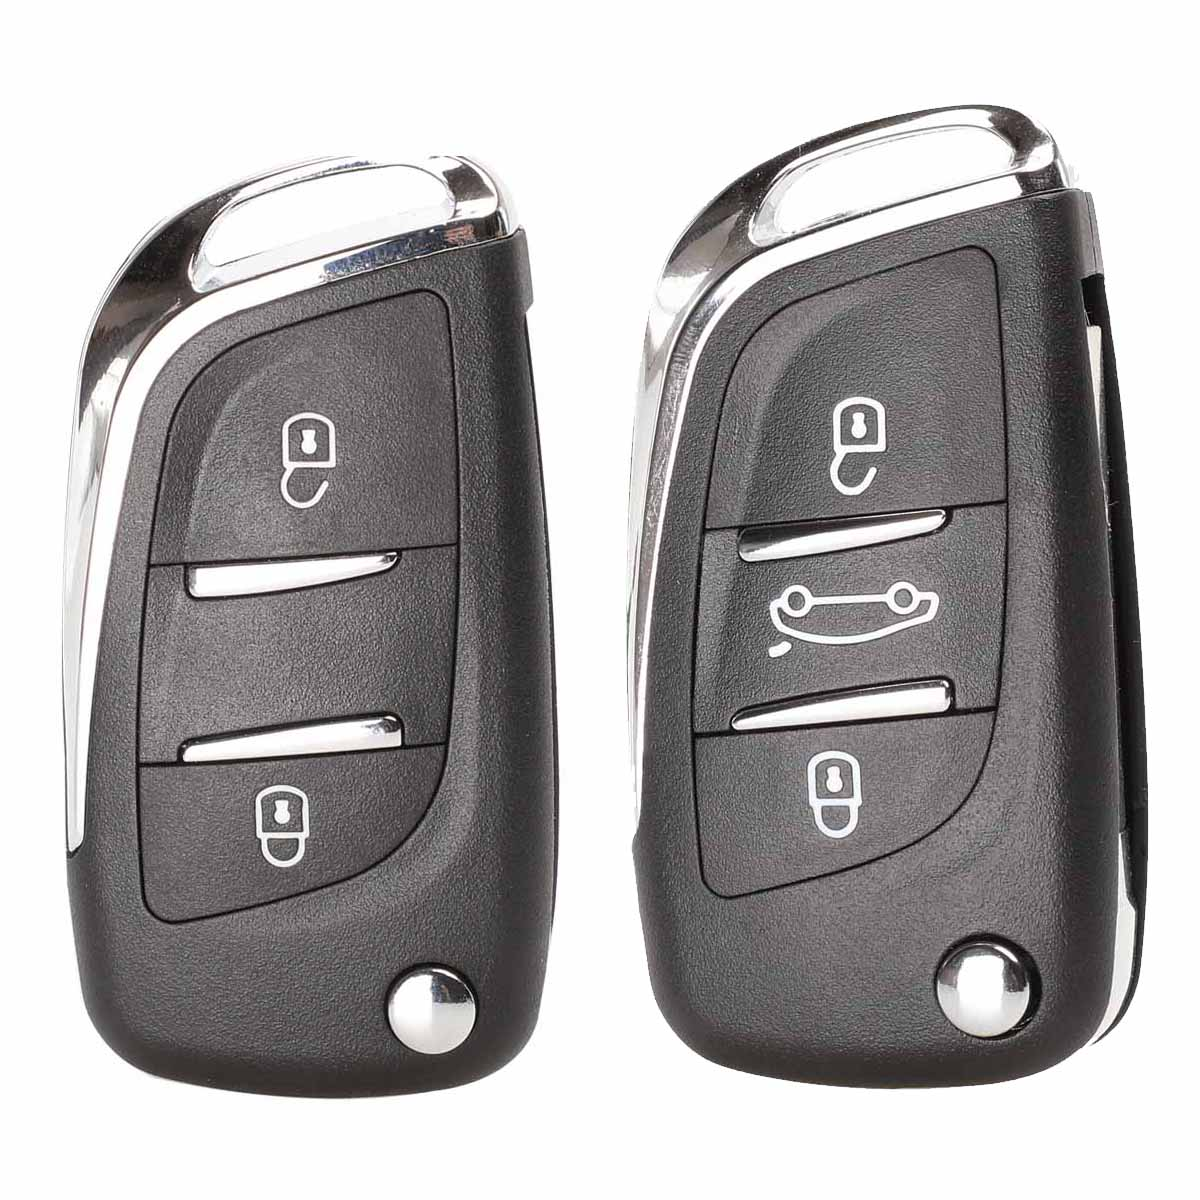 jingyuqin Folding Flip Remote Car <font><b>Key</b></font> Shell CE0536 for <font><b>Peugeot</b></font> 407 307 408 <font><b>308</b></font> CITROEN C2 C3 C4 C5 C6 XSARA GRAND PICASSO Groove image